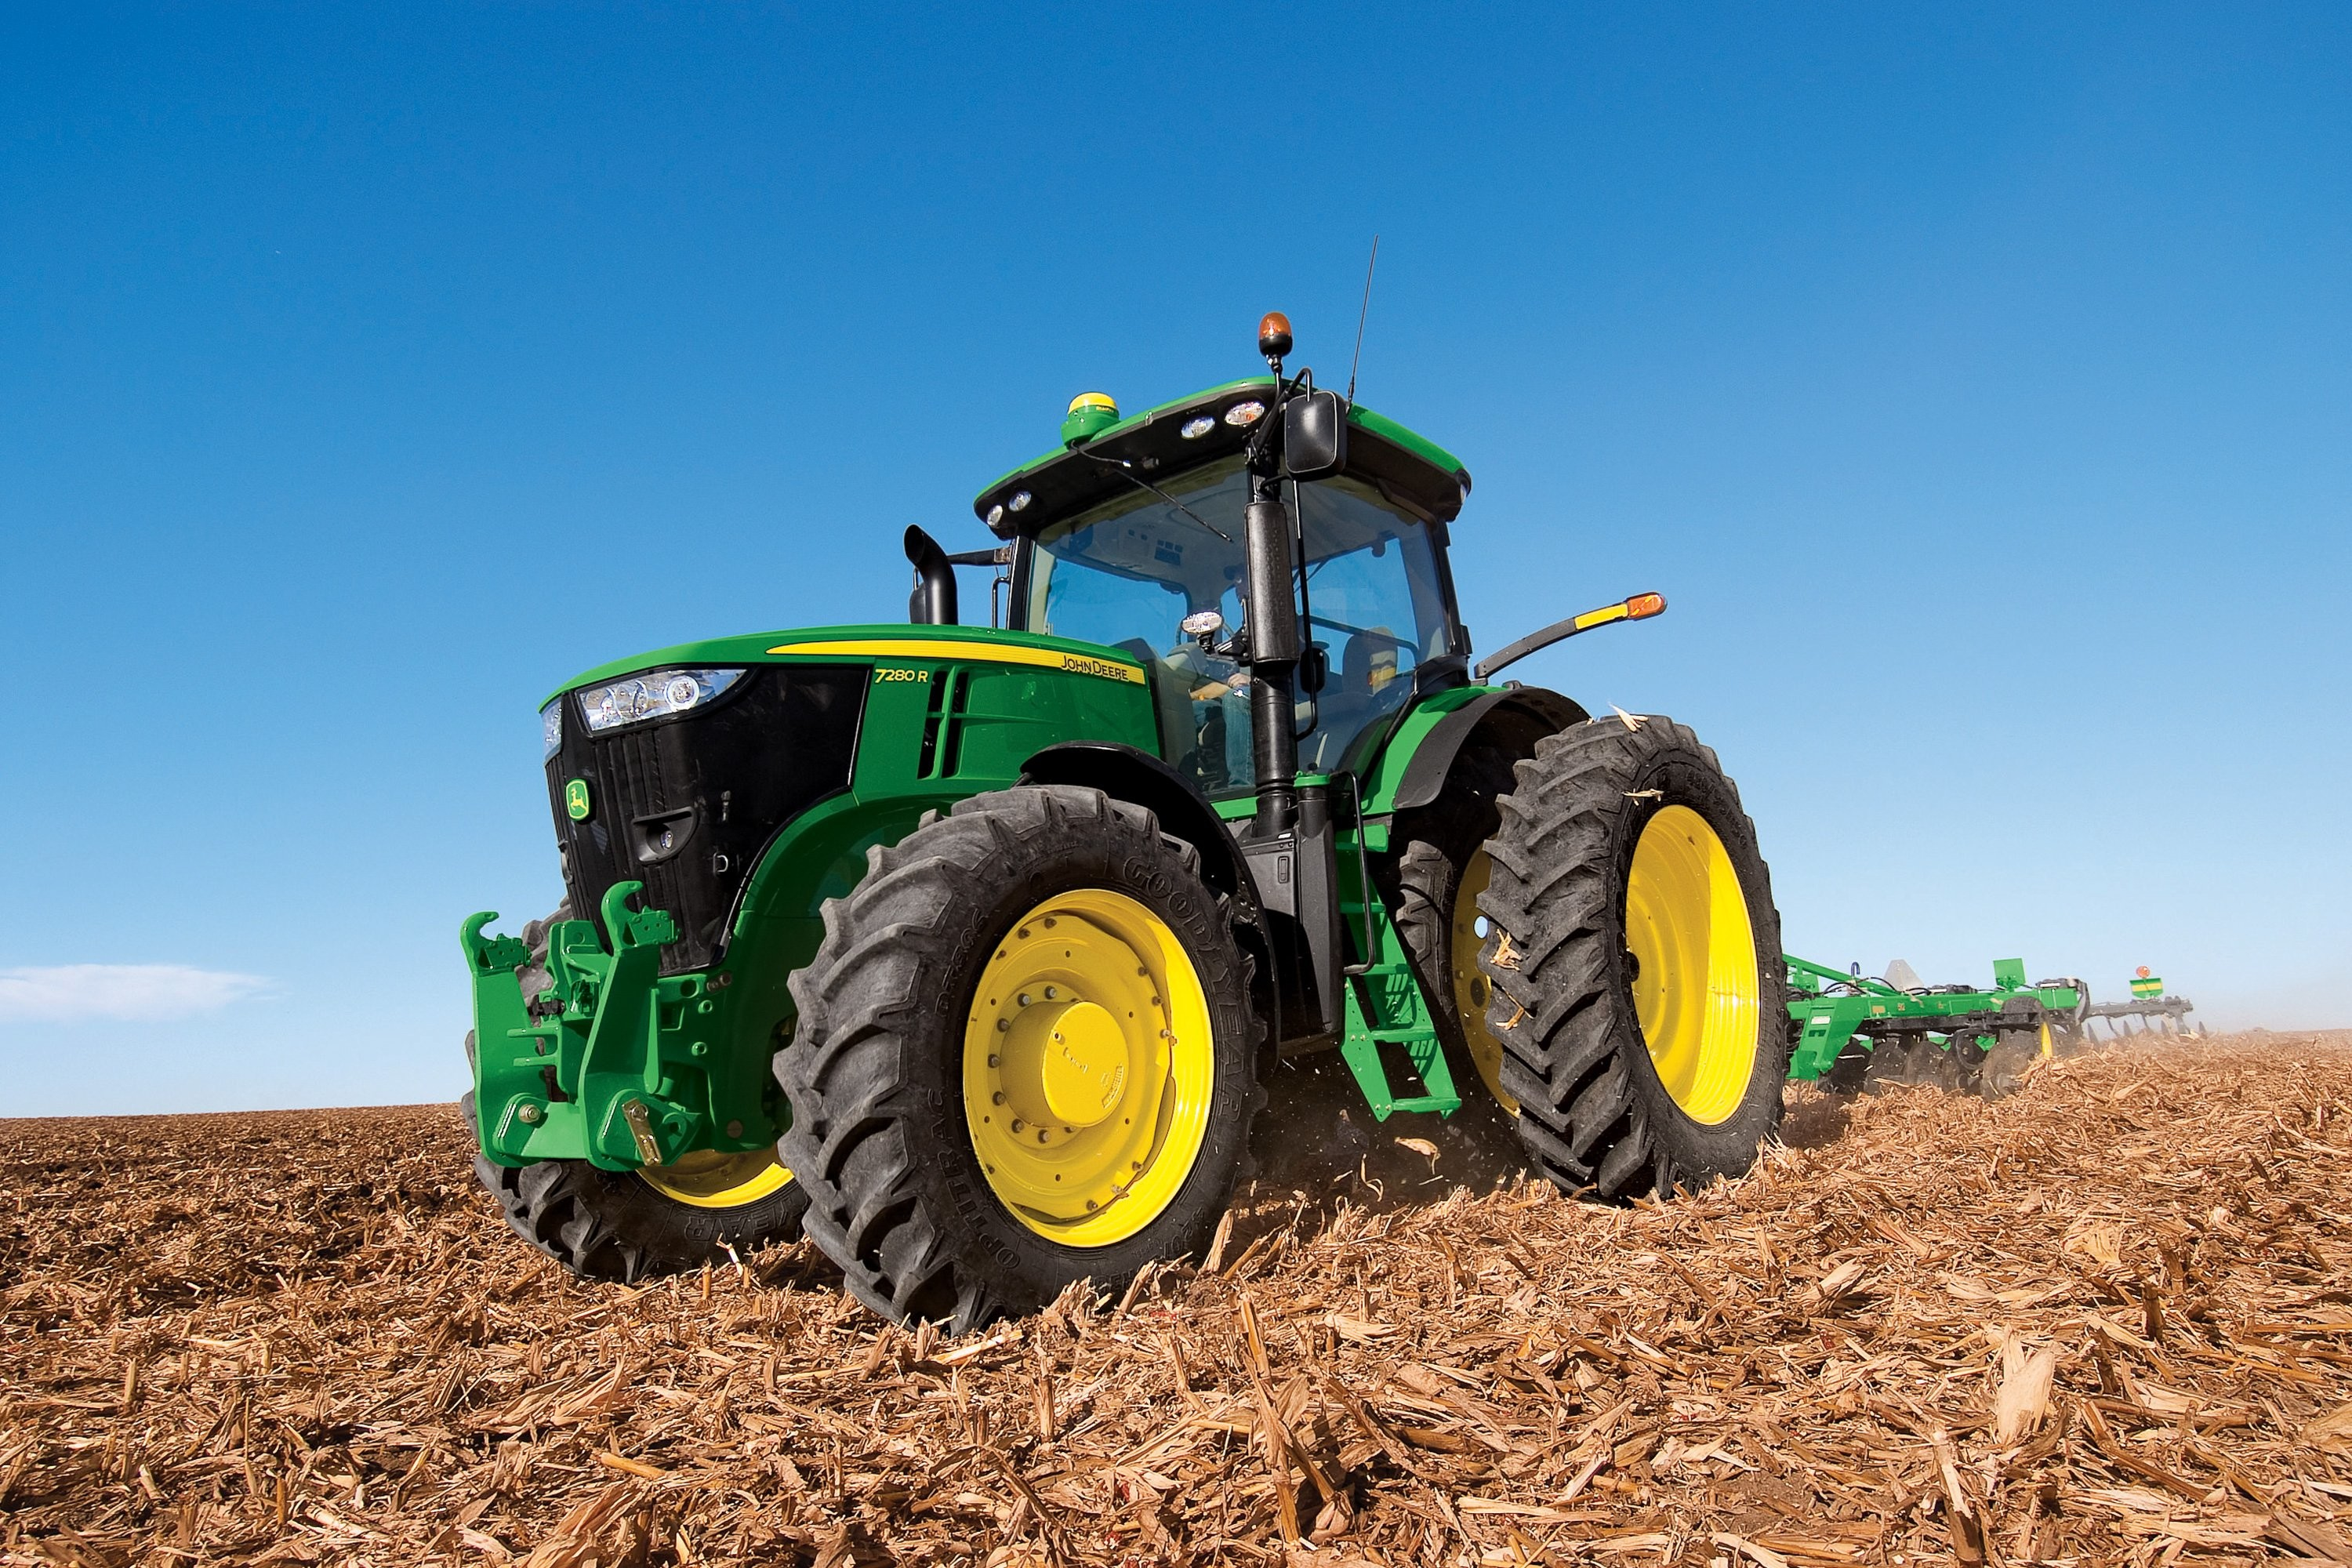 Tractor Wallpaper 64 images 3000x2000